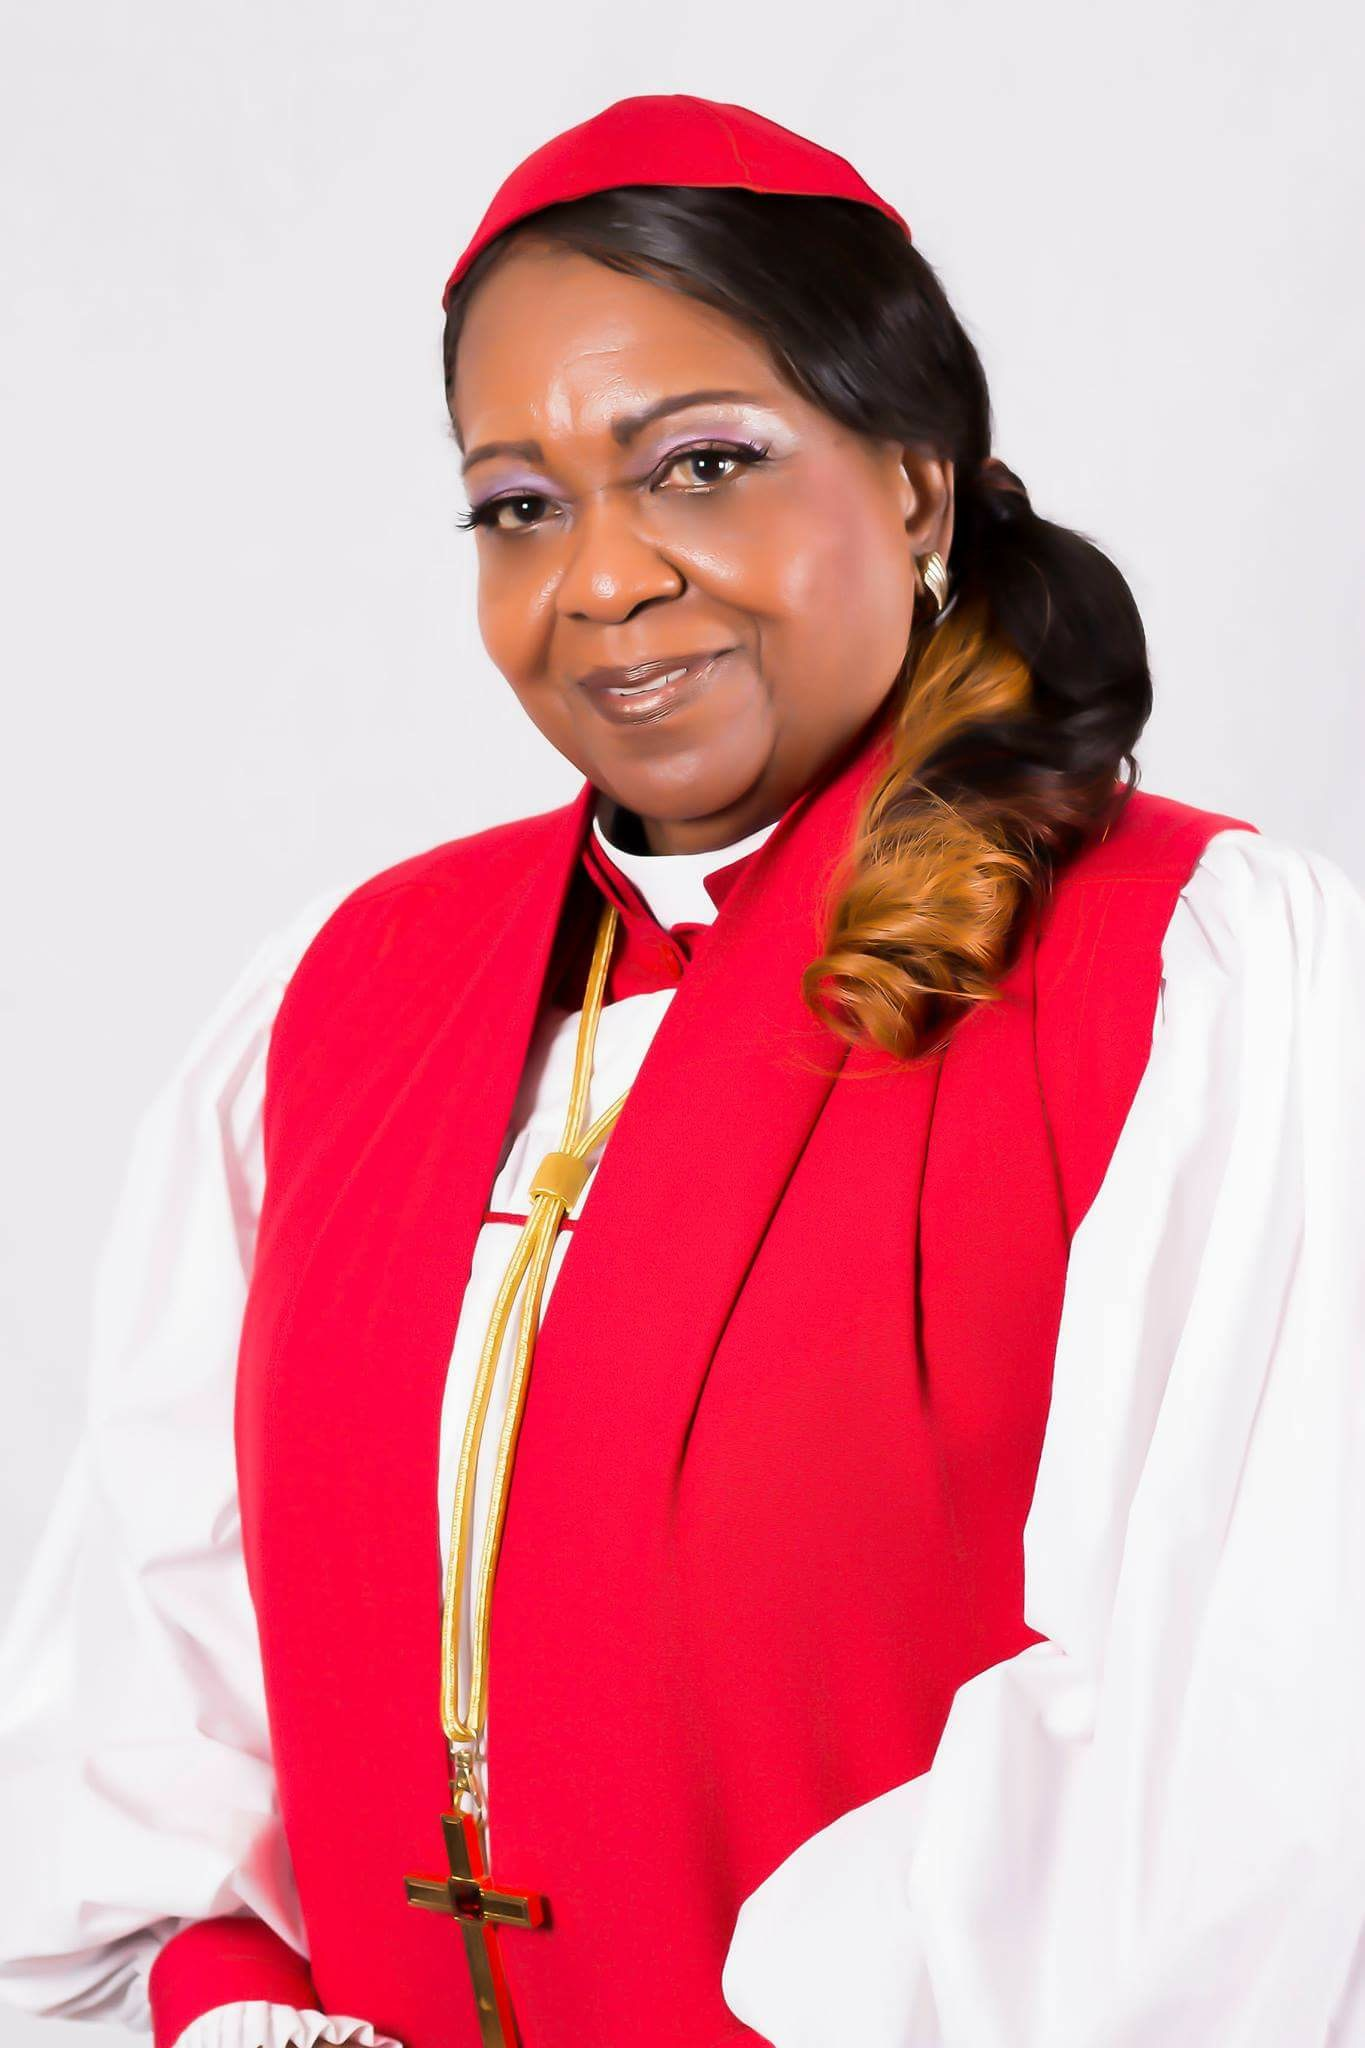 Chief Apostle Olive C. Brown